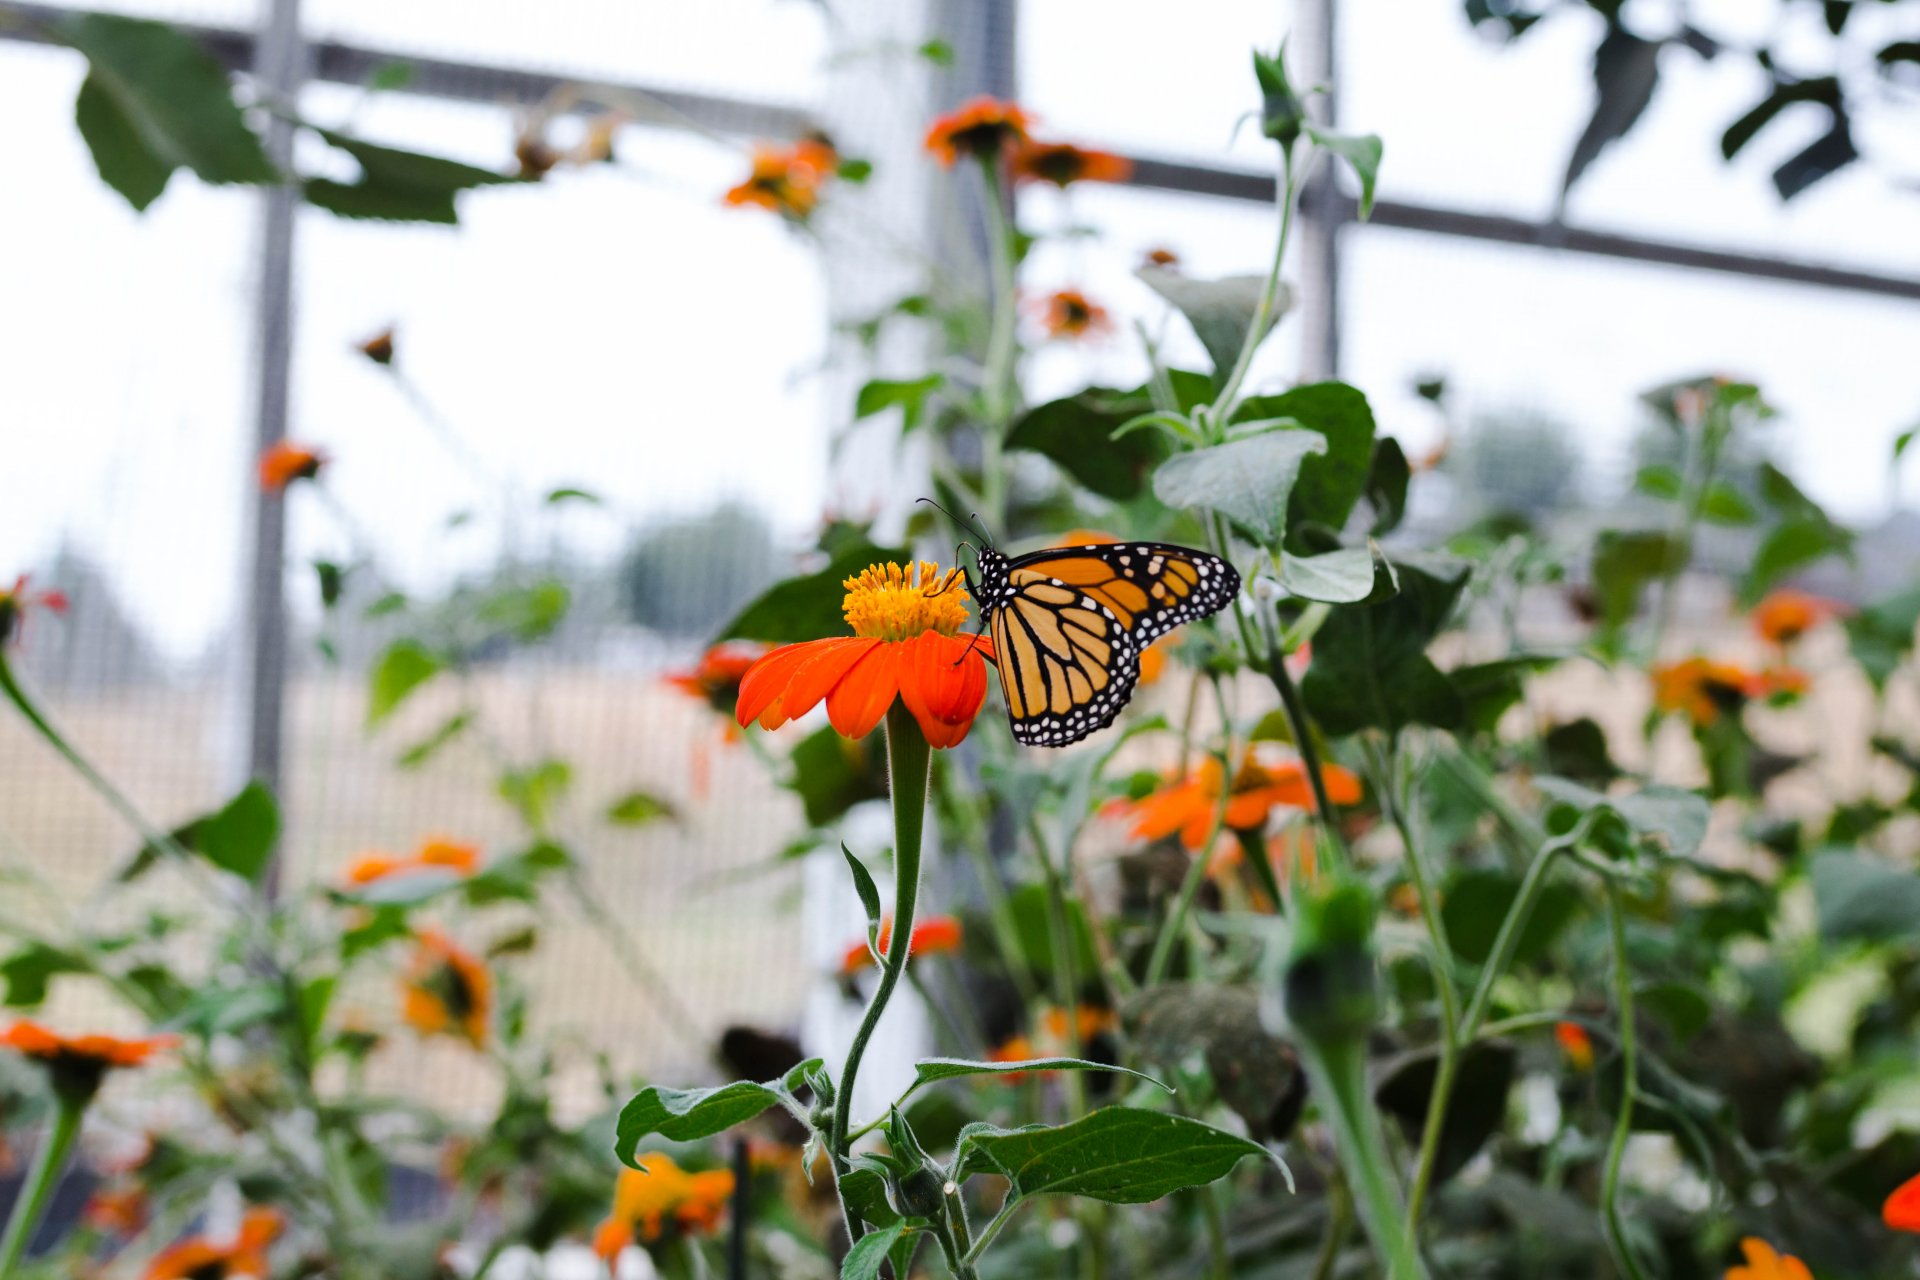 Monarch butterfly sipping nectar from a Mexican sunflower. Photo credit: Lauren Shea